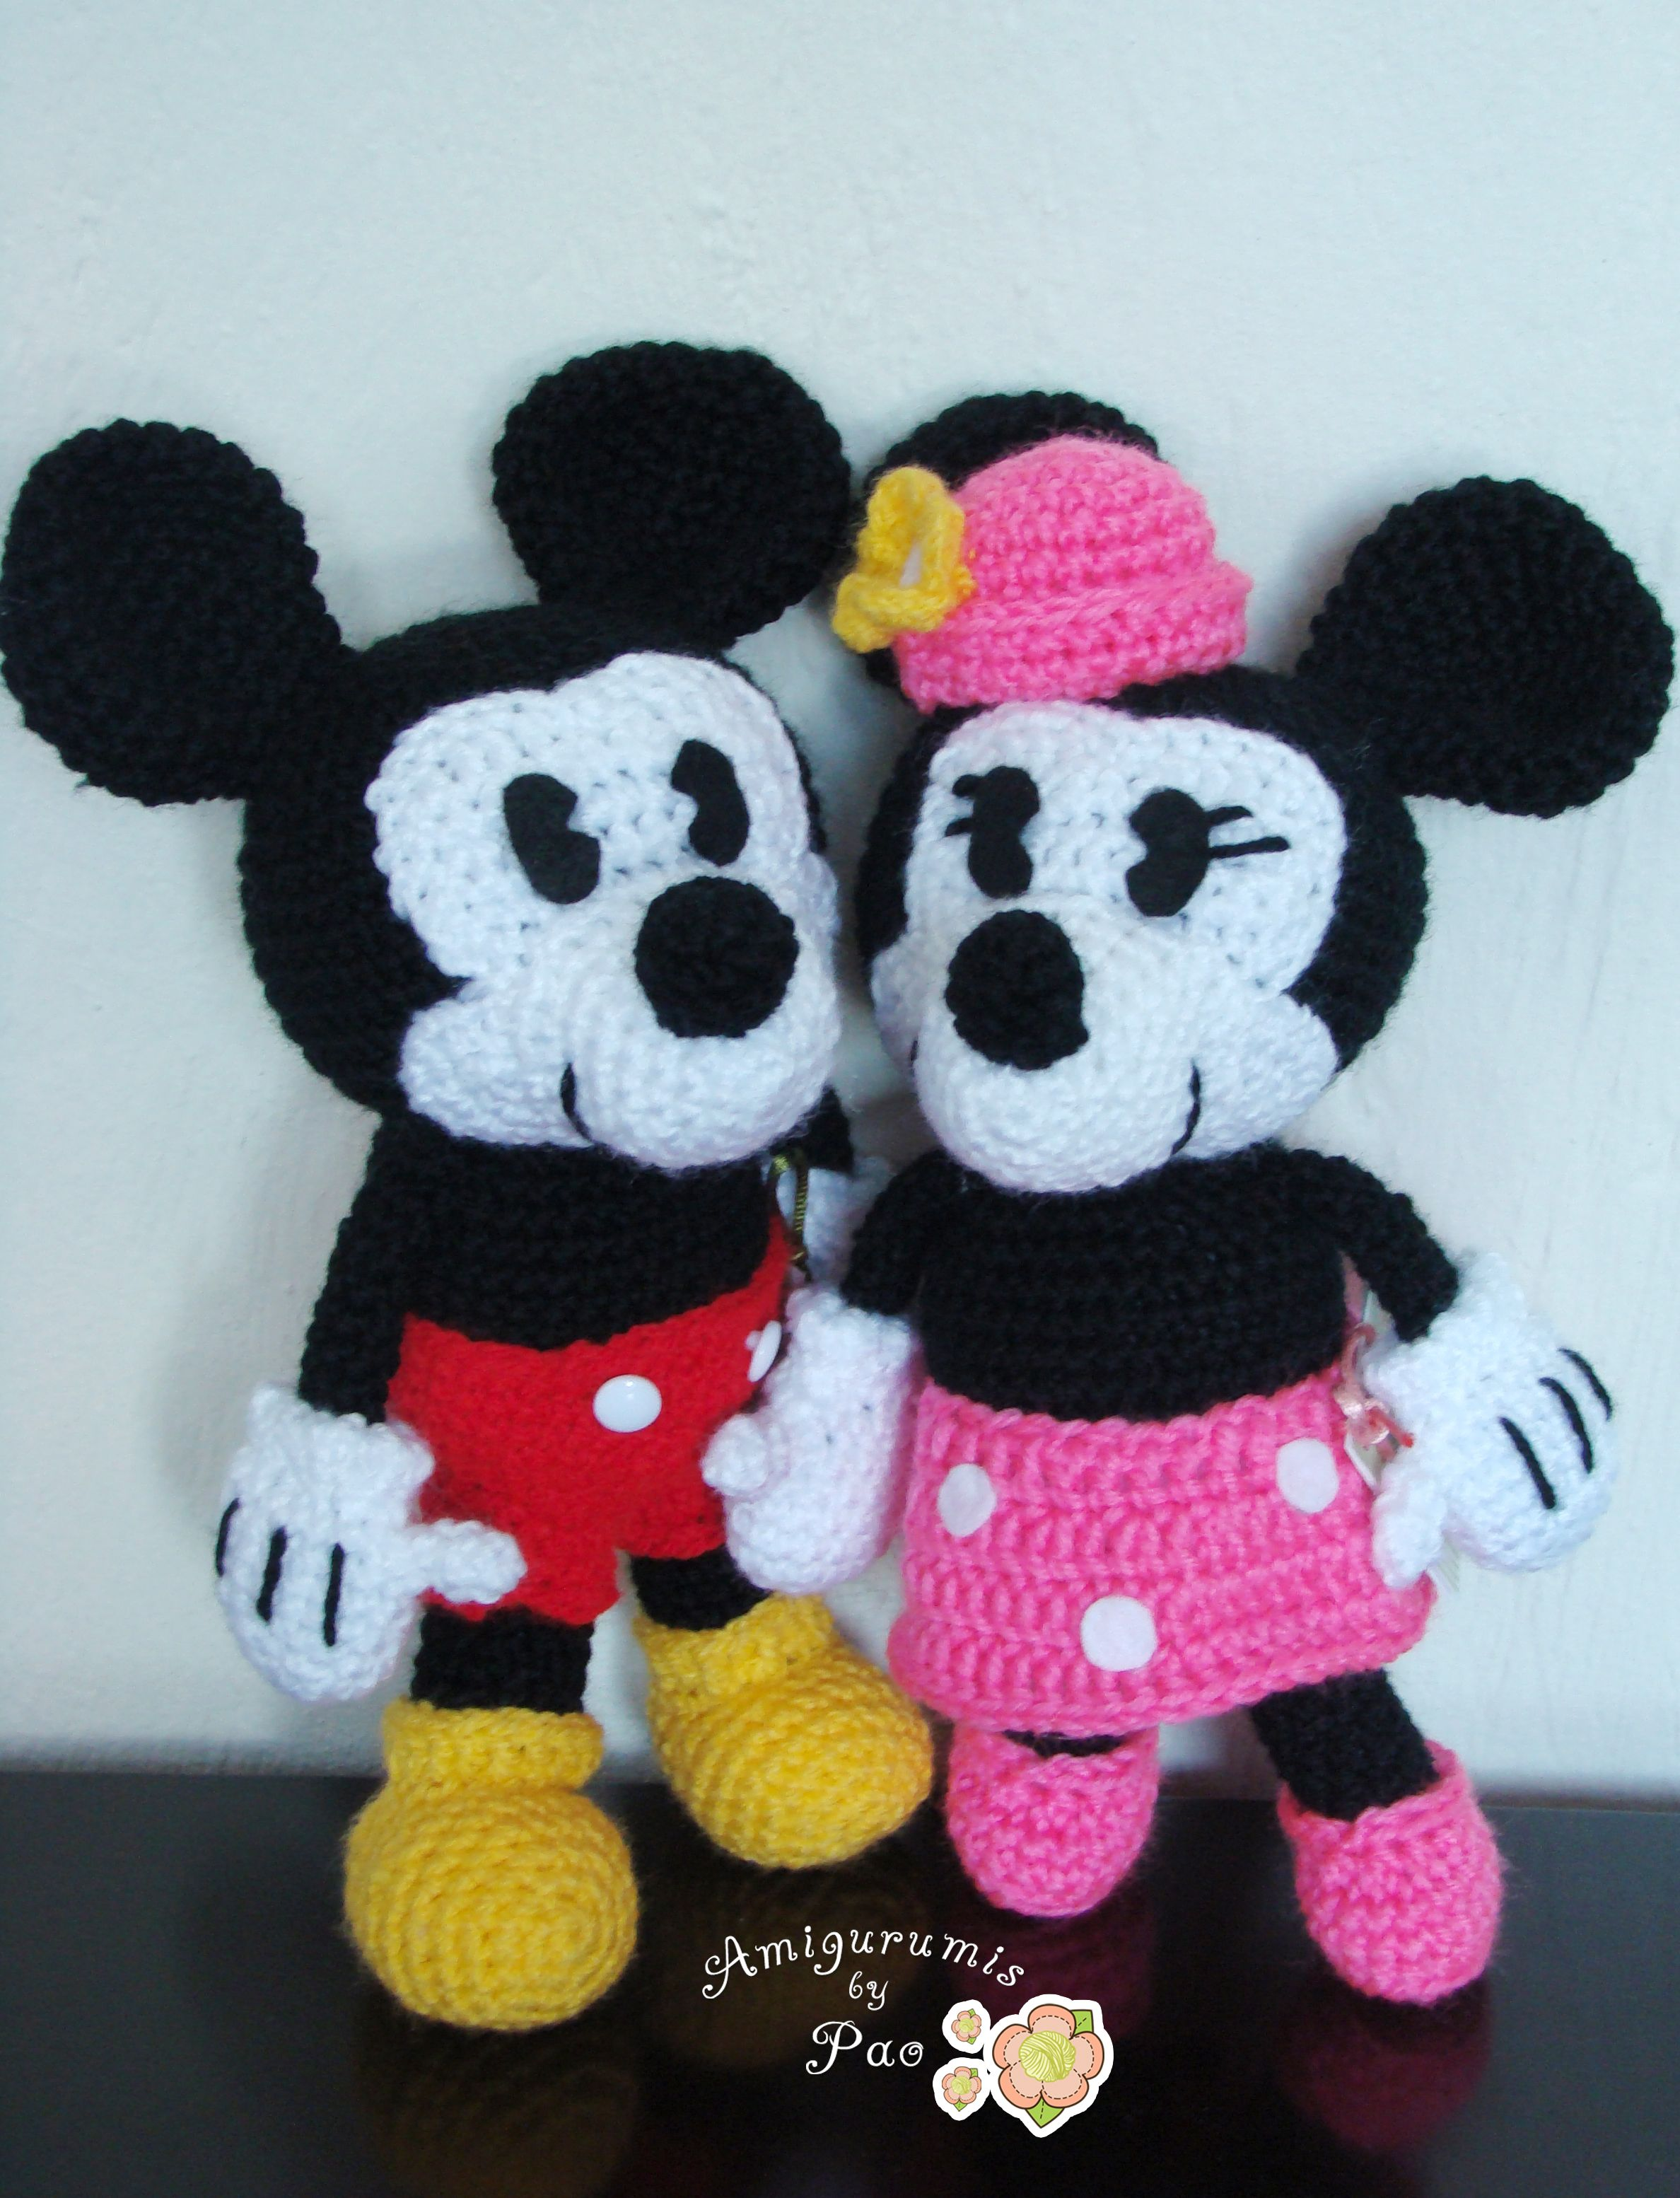 Pack Mickey and Minnie Mouse Amigurumi Pattern | Pinterest ...